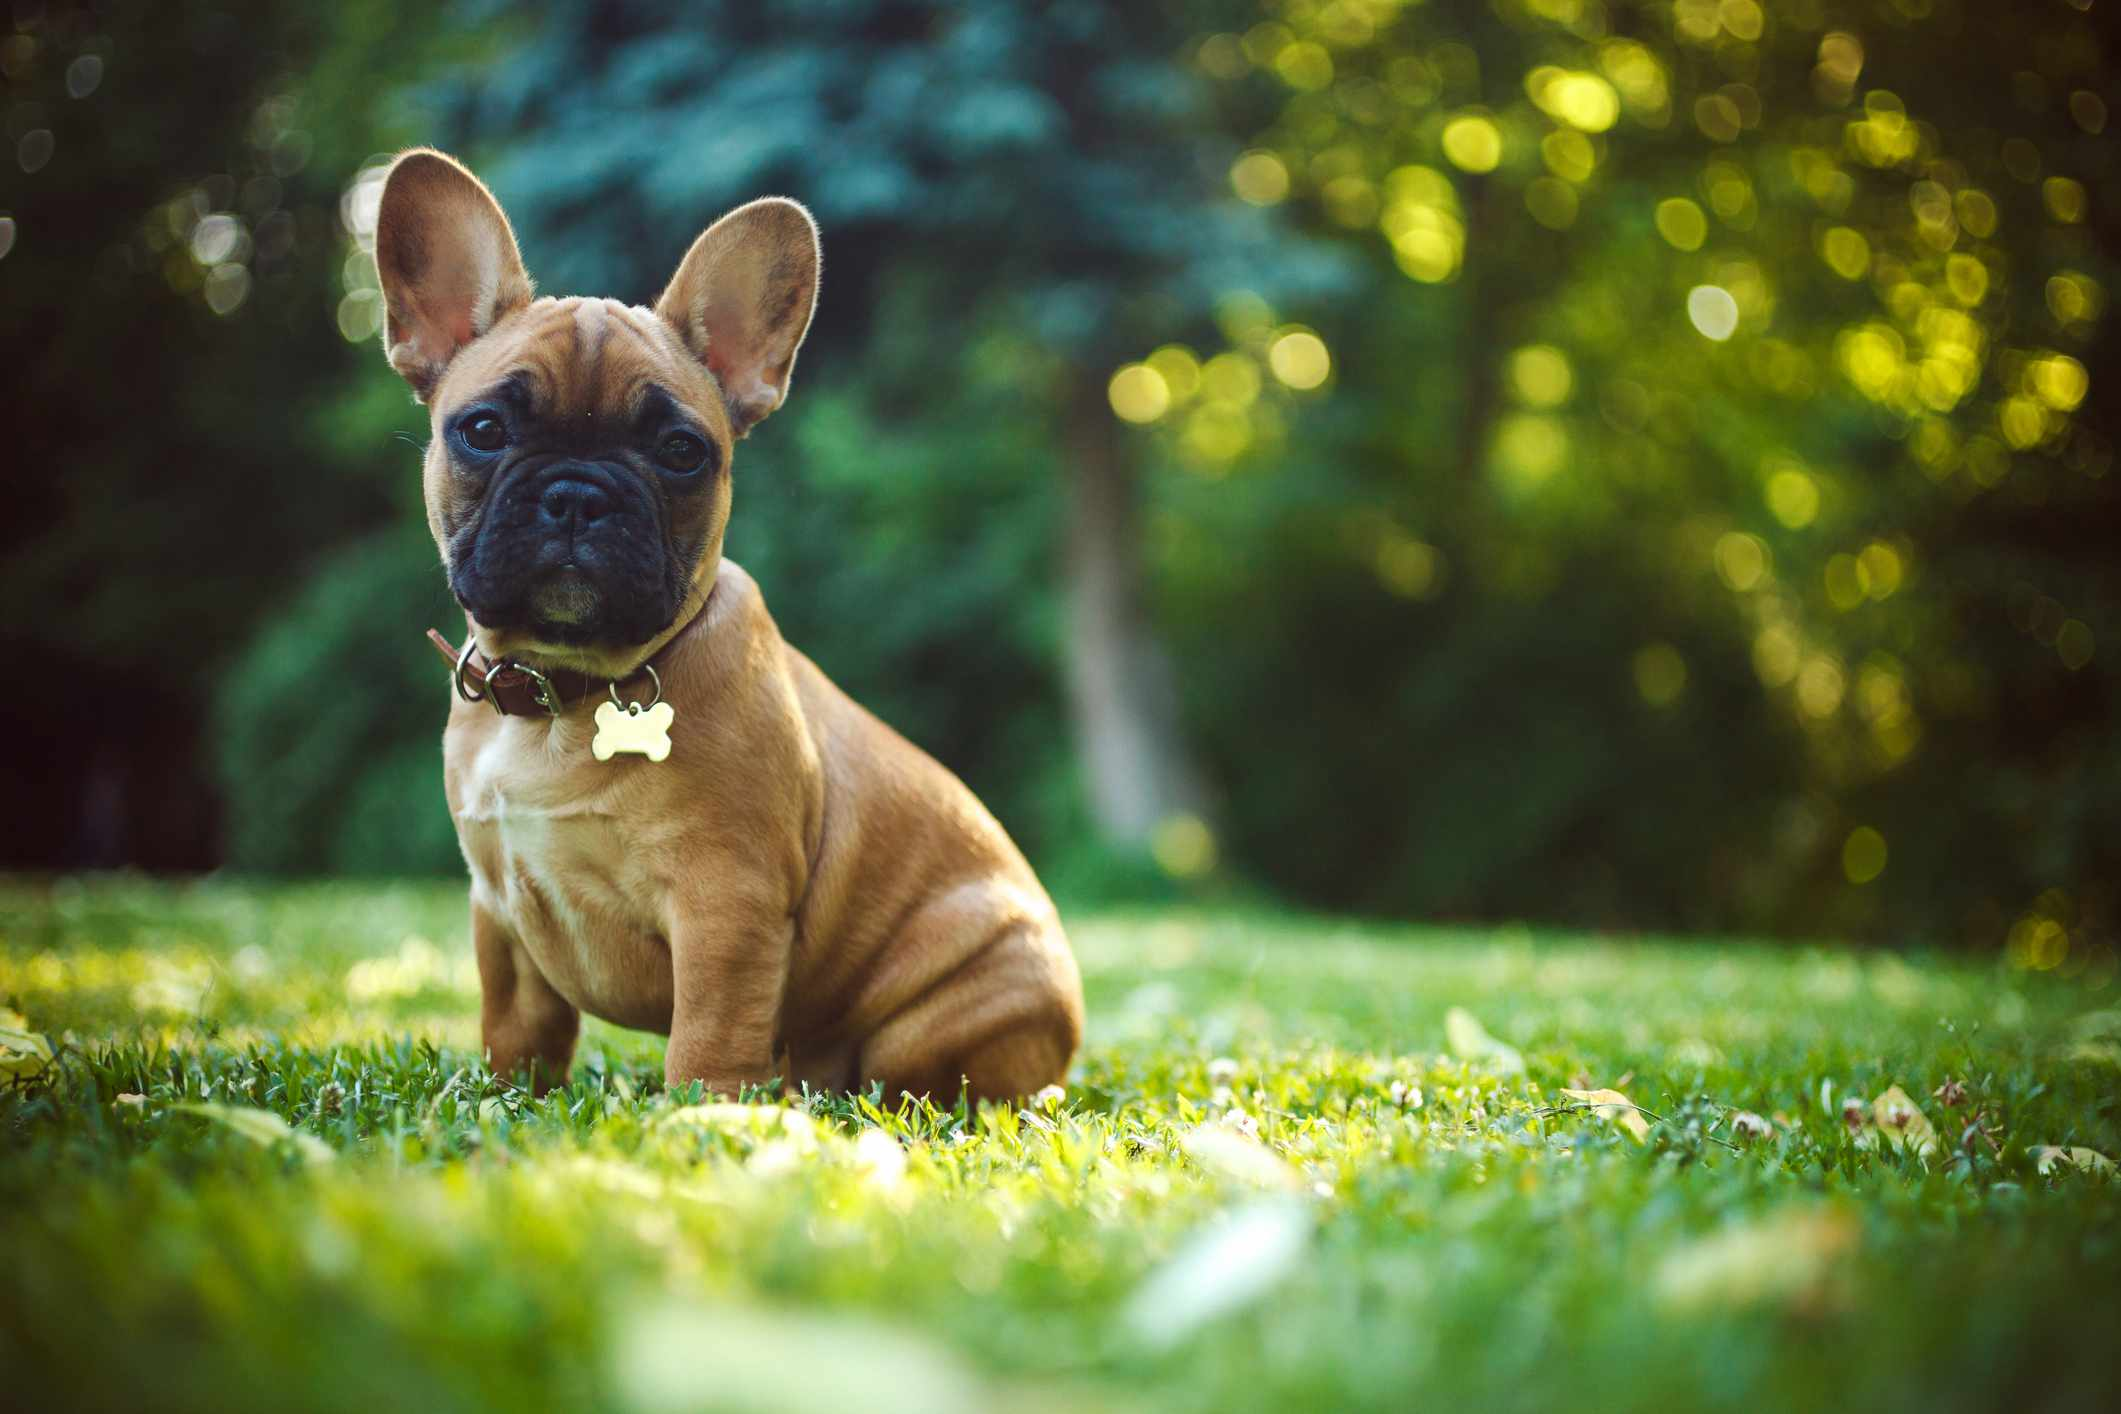 A brown and black Frenchie sitting in the grass.